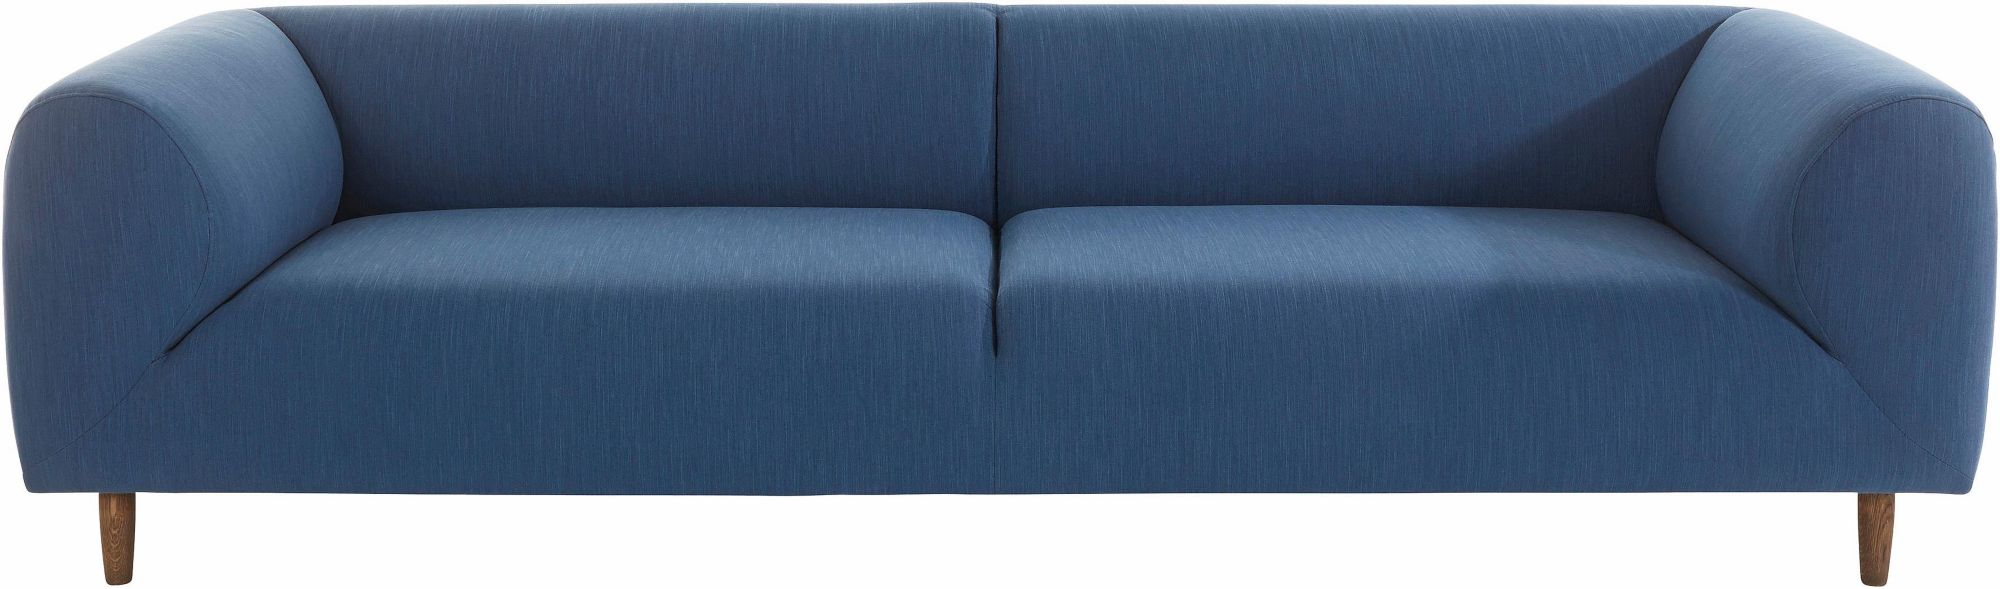 Andas 3 Sitzer Sofa »Arendal«, Designed By Anders Nørgaard